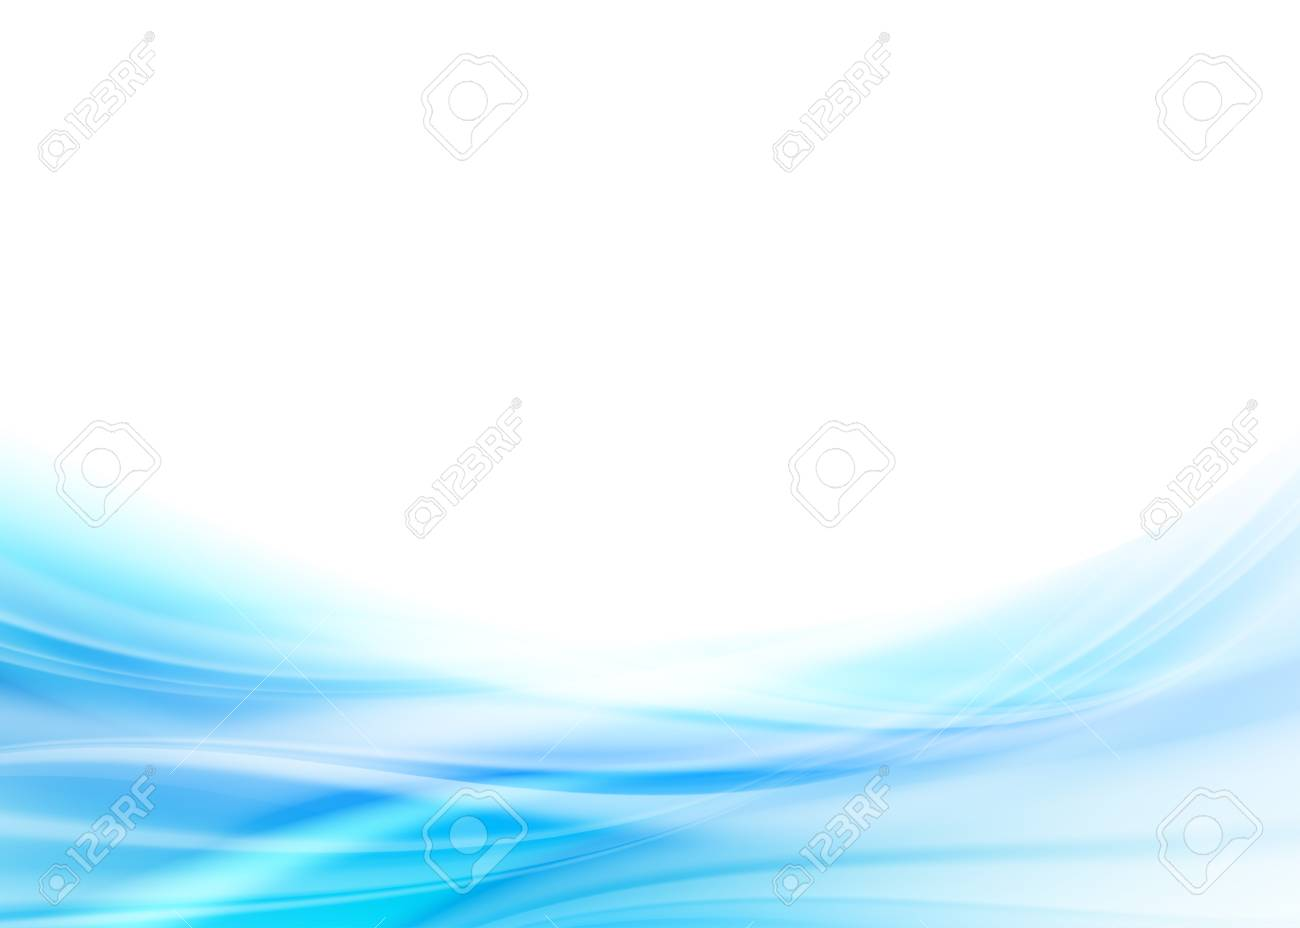 Blue Abstract Background - 56642521